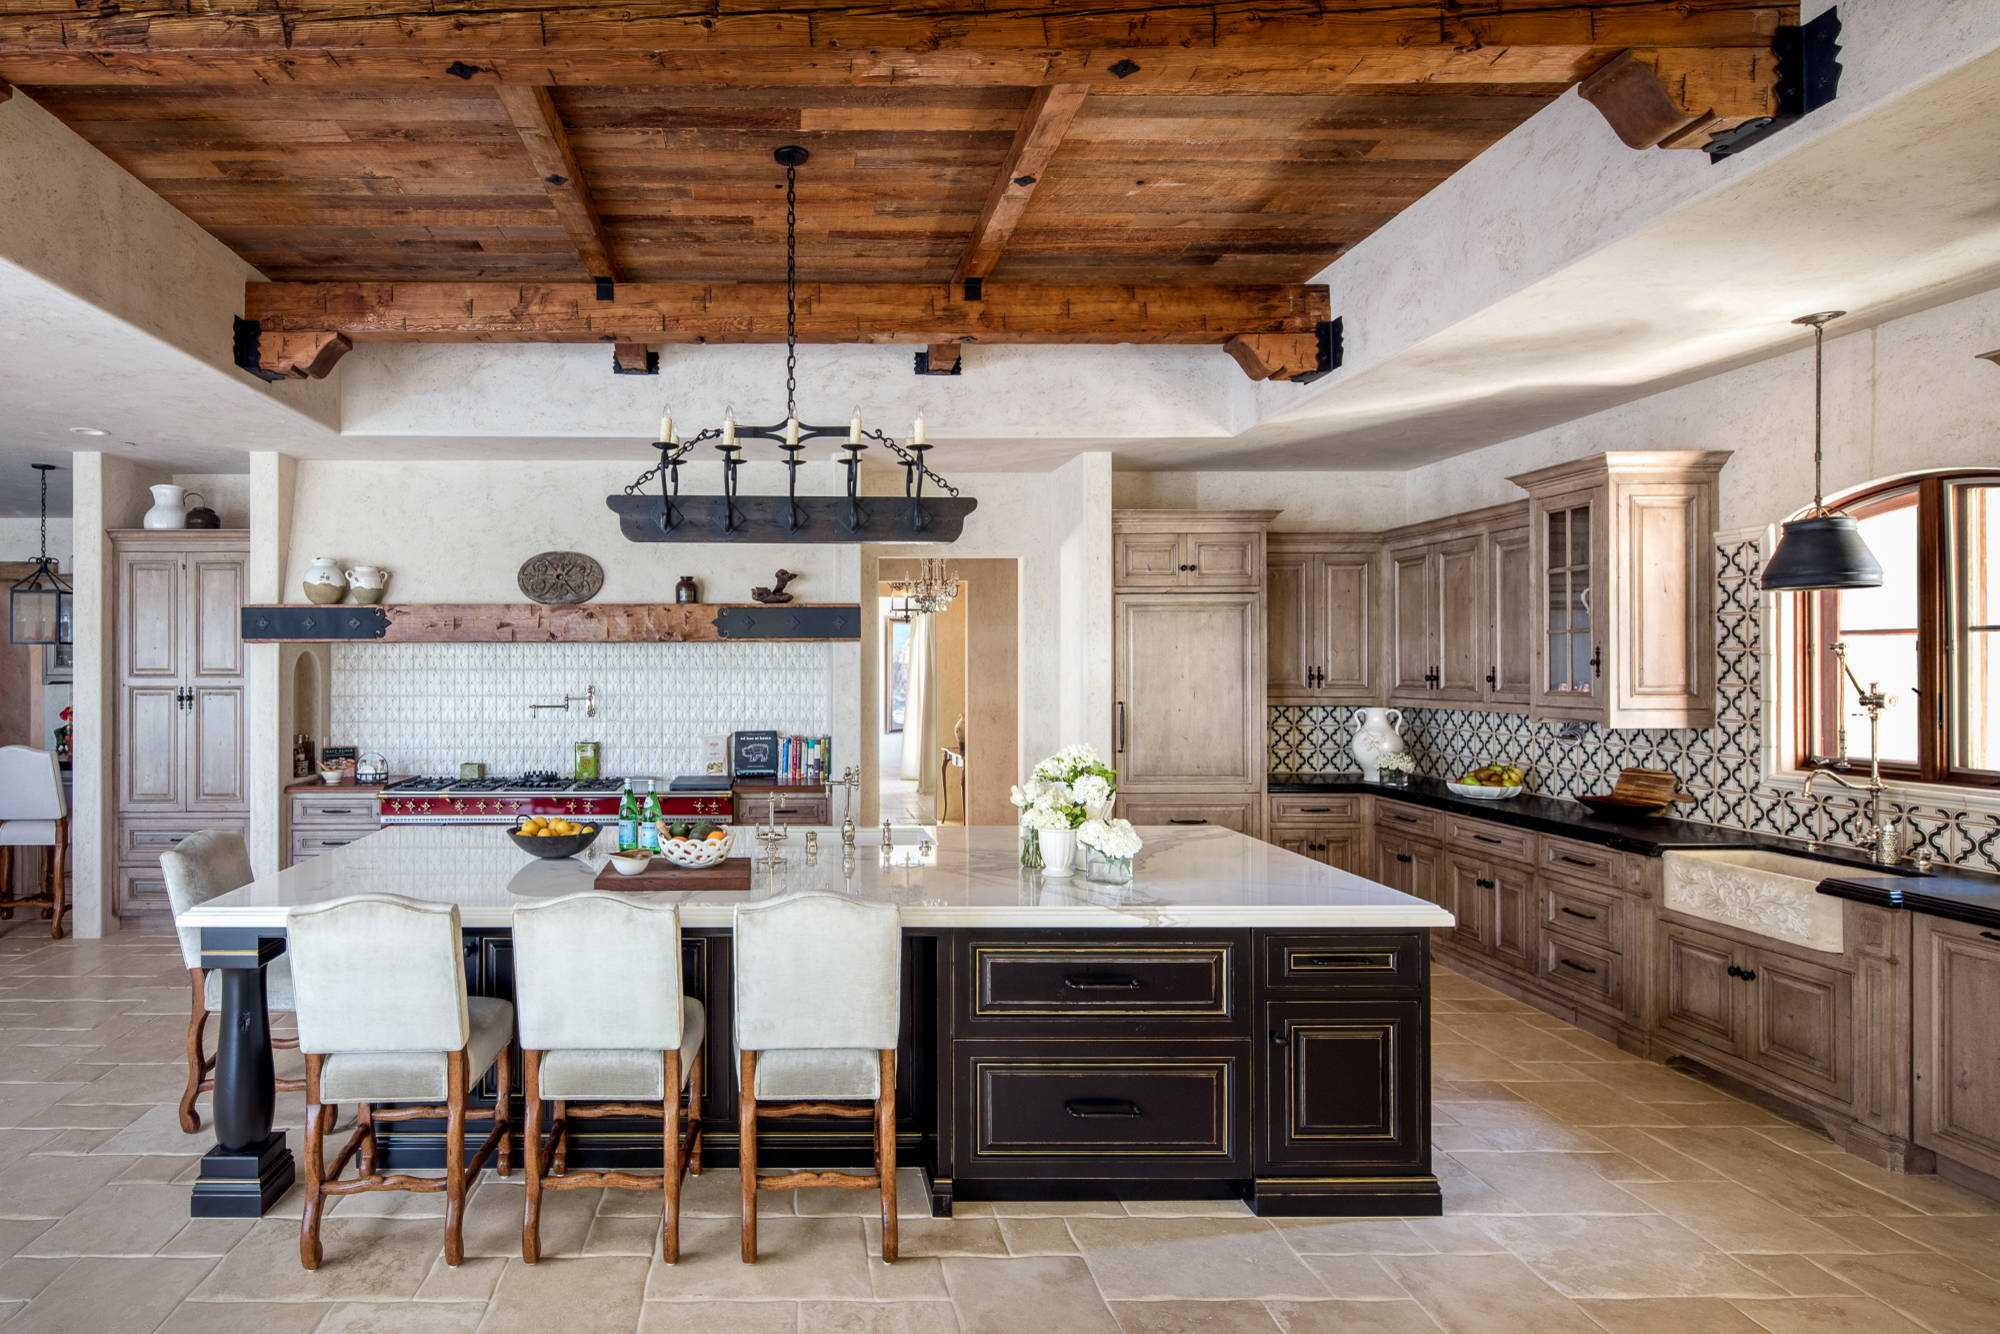 Kitchen Design Images Kitchens 16 Charming Mediterranean Kitchen Designs That Will